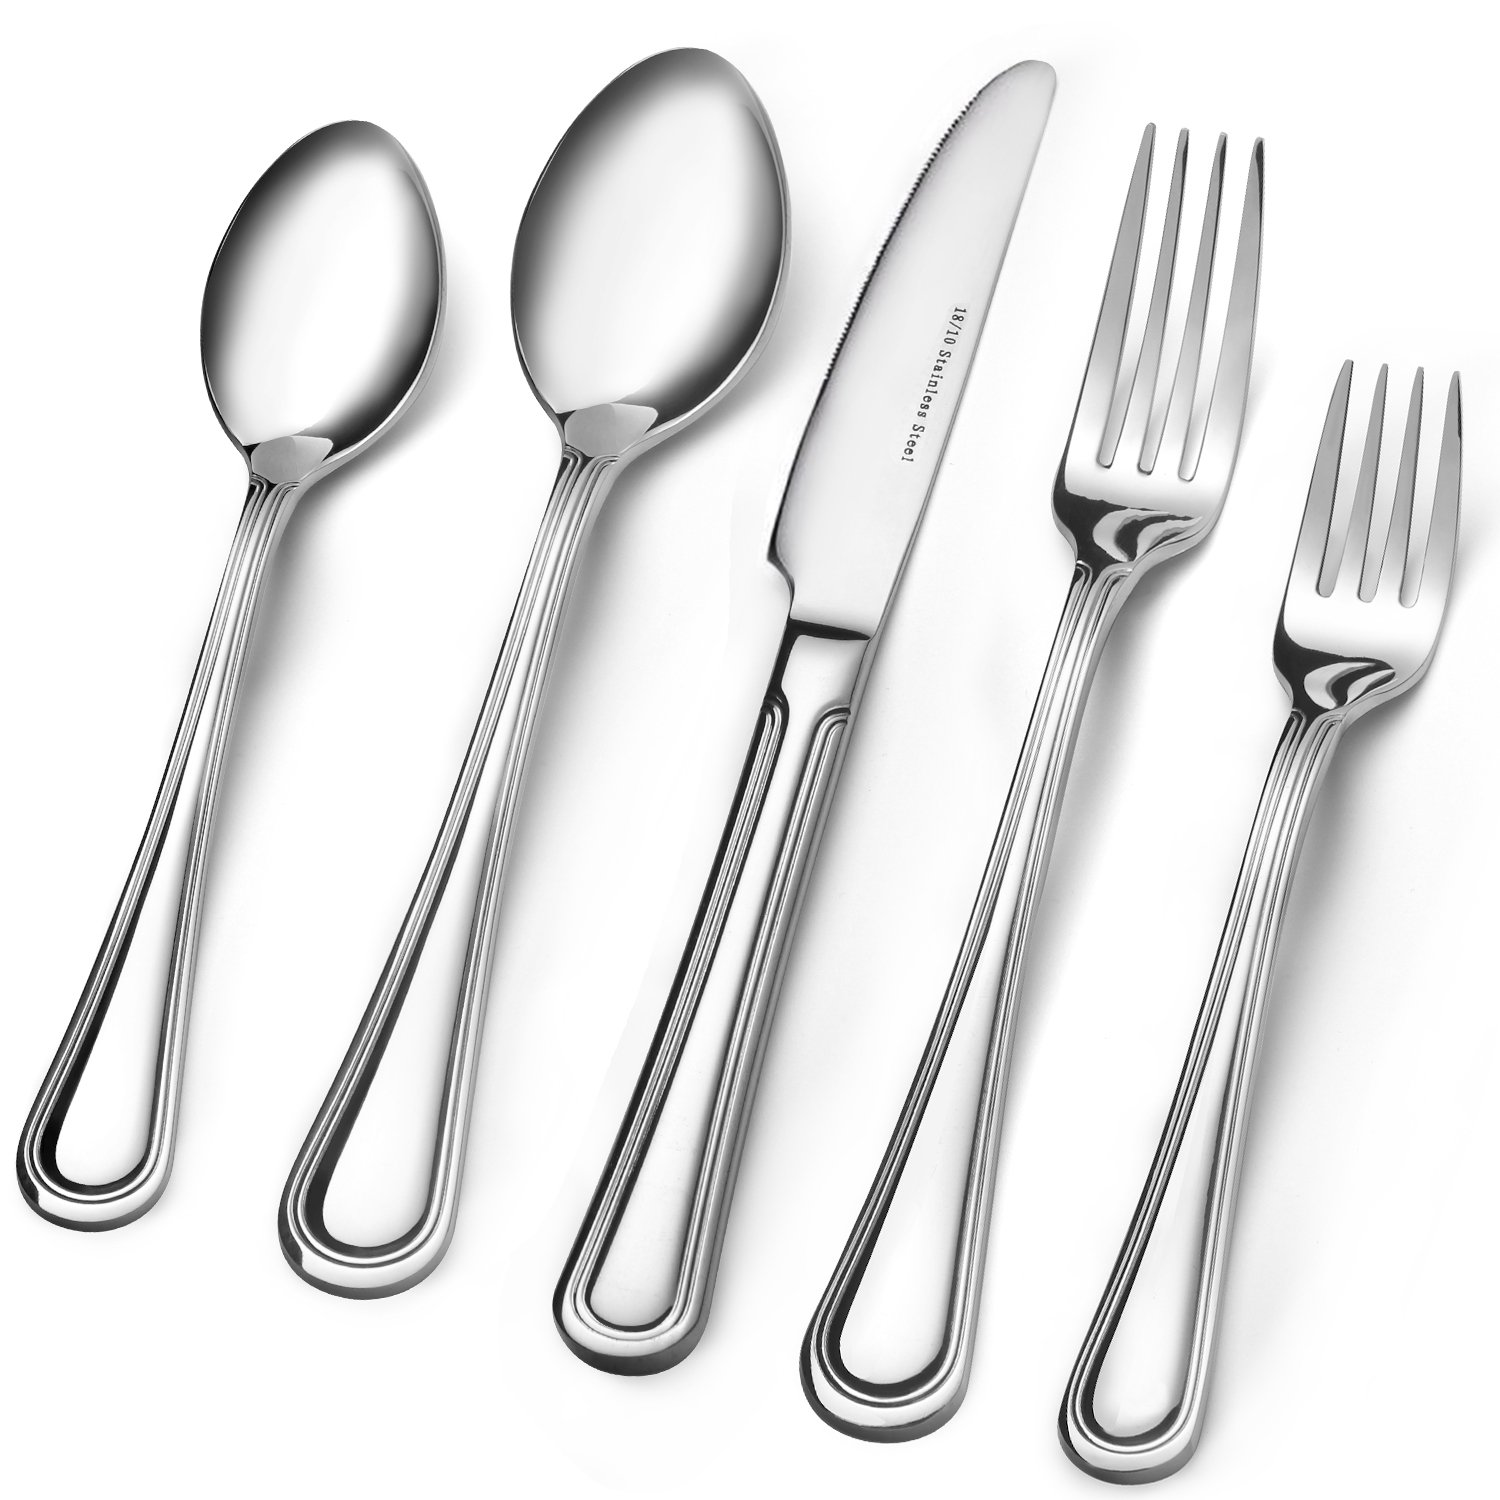 Consistent Quality 18/10 Stainless Steel Flatware 20-Piece Set, Extra Thick Heay Duty - Flatware Set for 4, Dishwasher Safe by Muncene